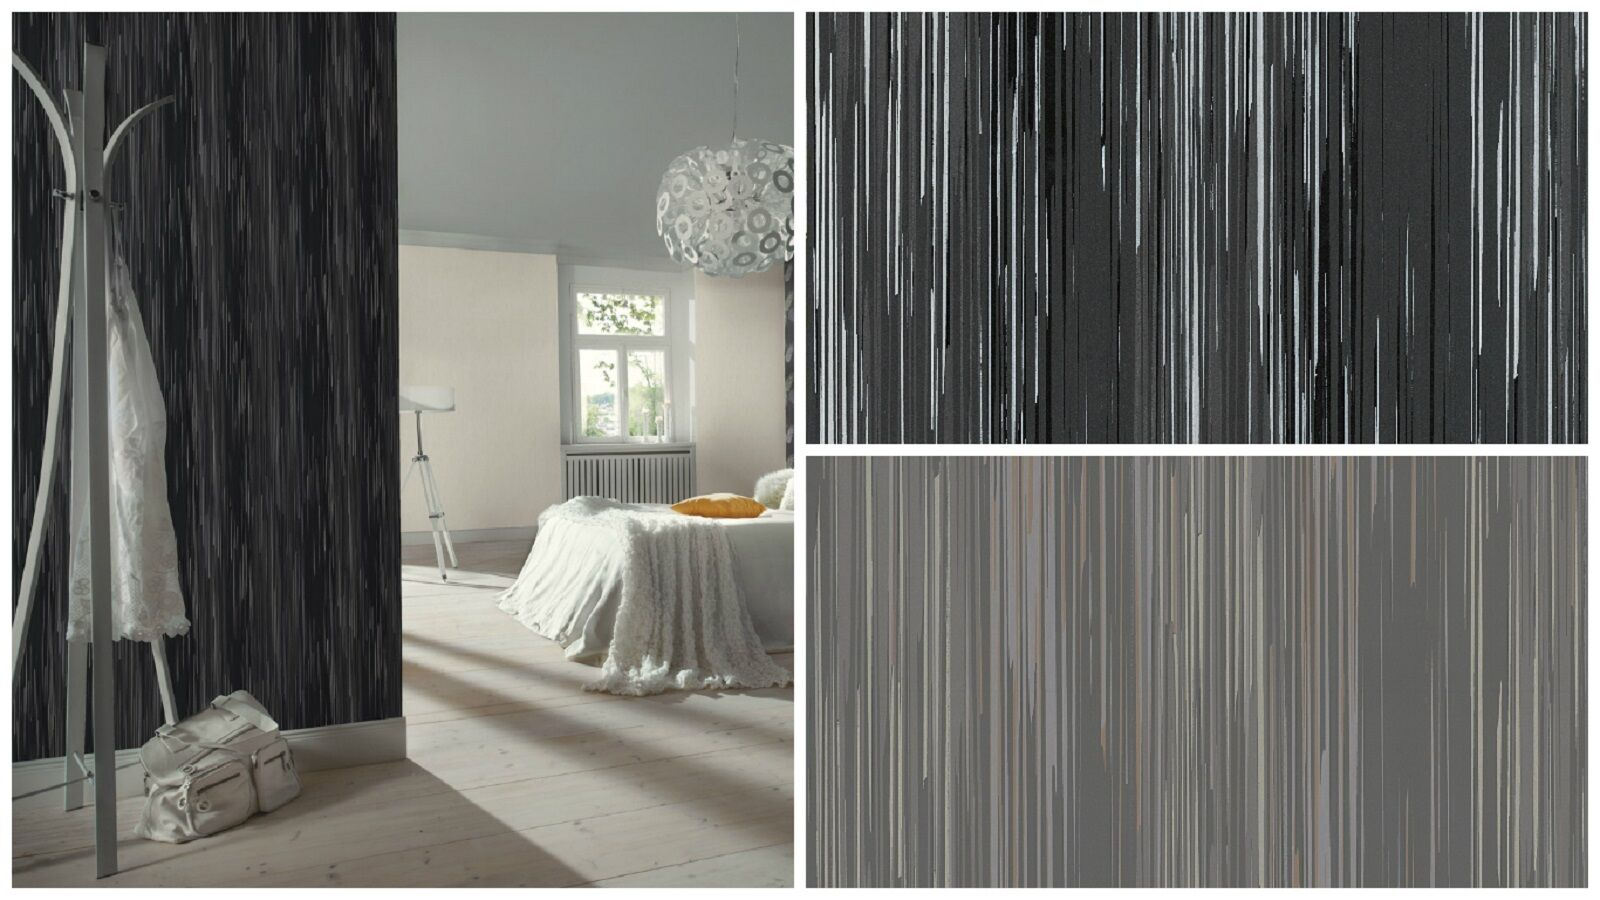 vlies tapete streifen struktur schwarz silber grau. Black Bedroom Furniture Sets. Home Design Ideas